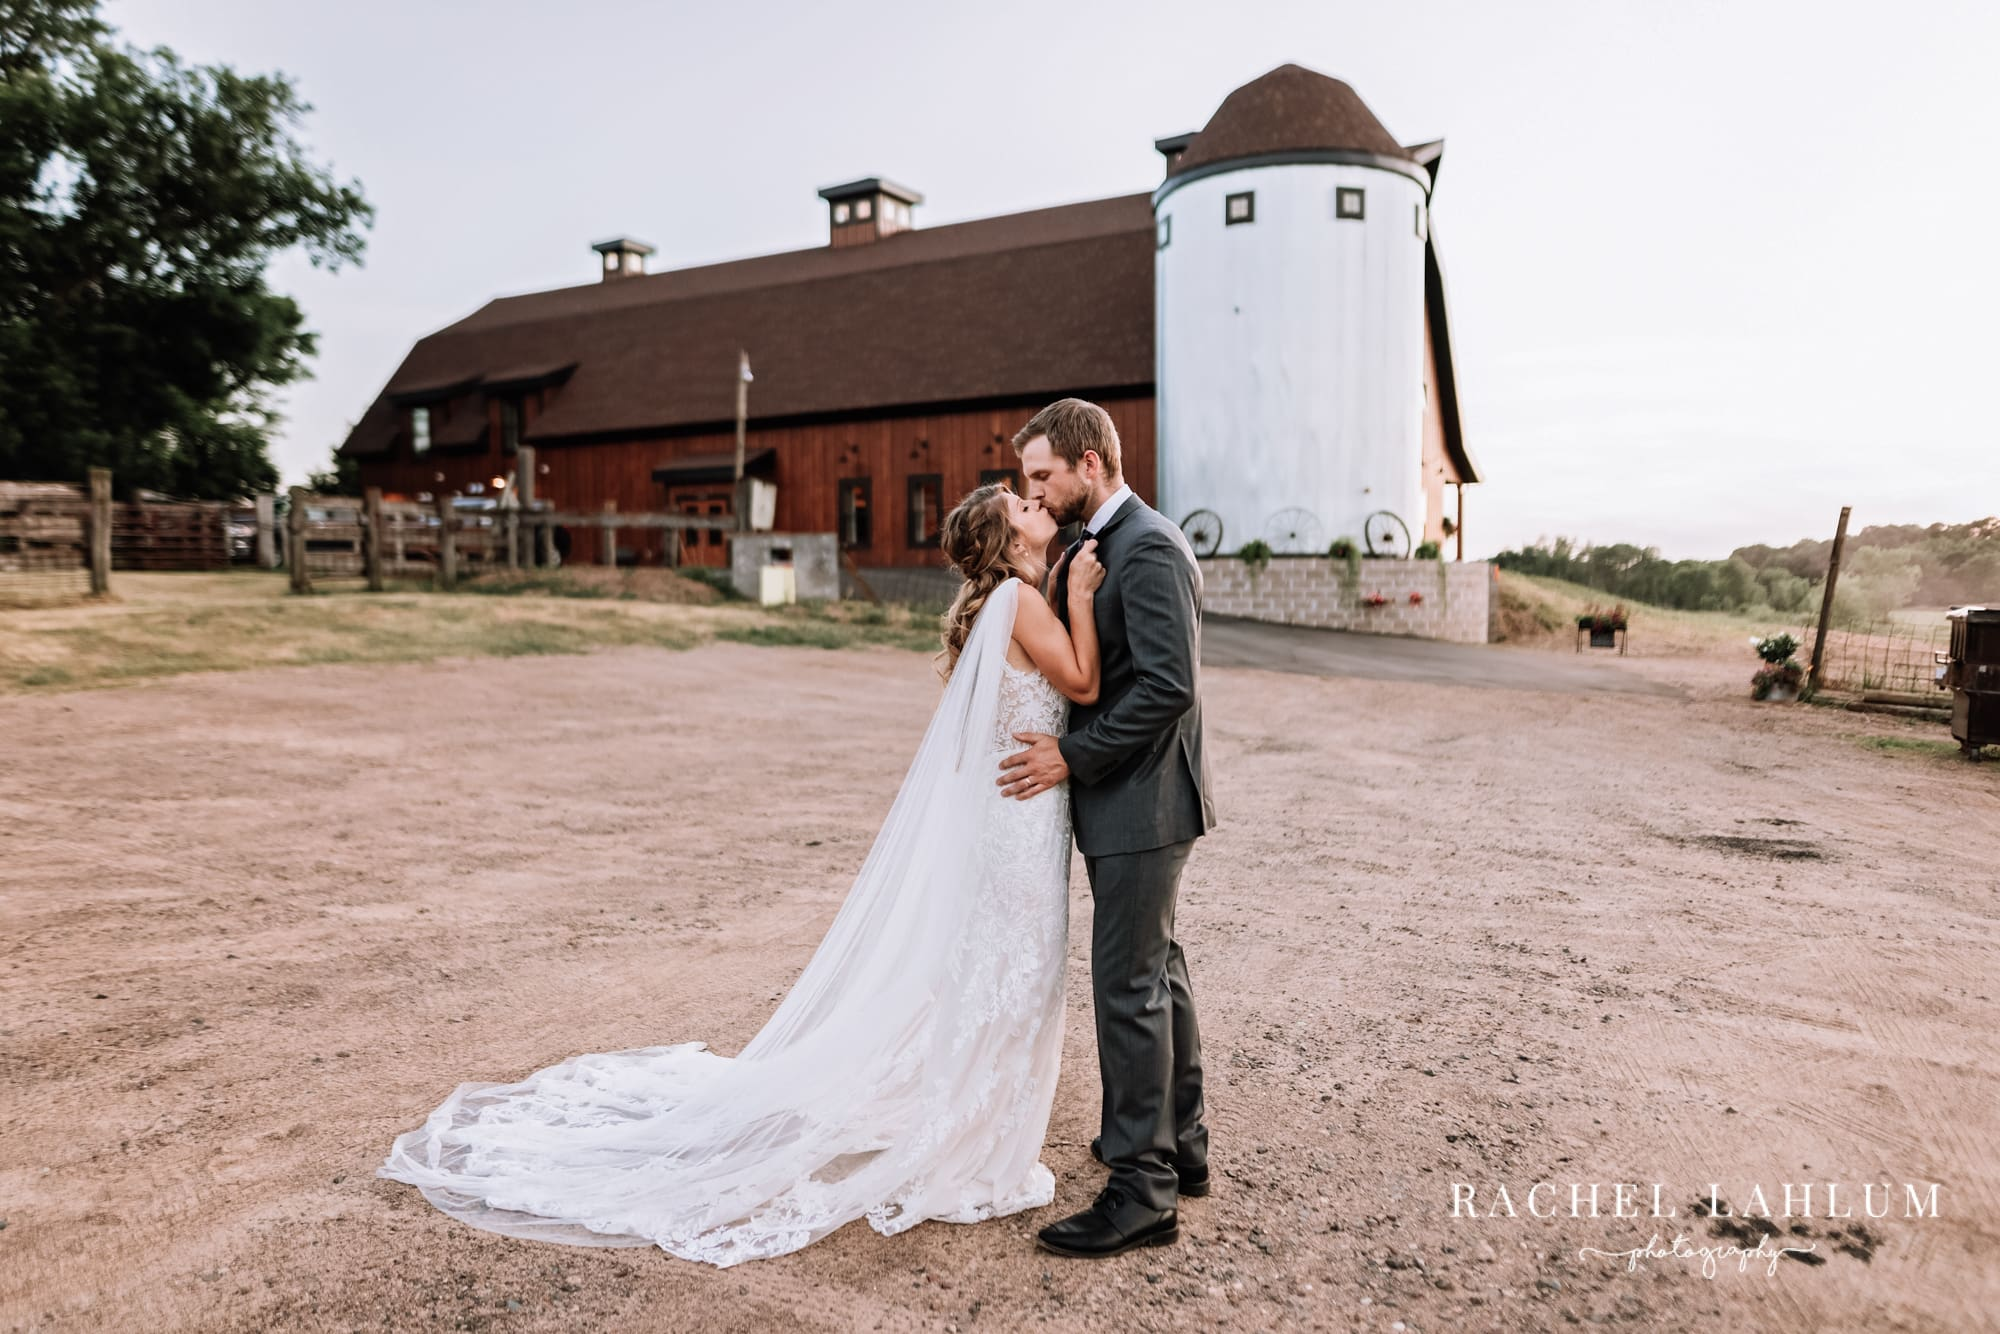 Bride and groom kiss in front of barn-style wedding venue in Isanti, Minnesota.